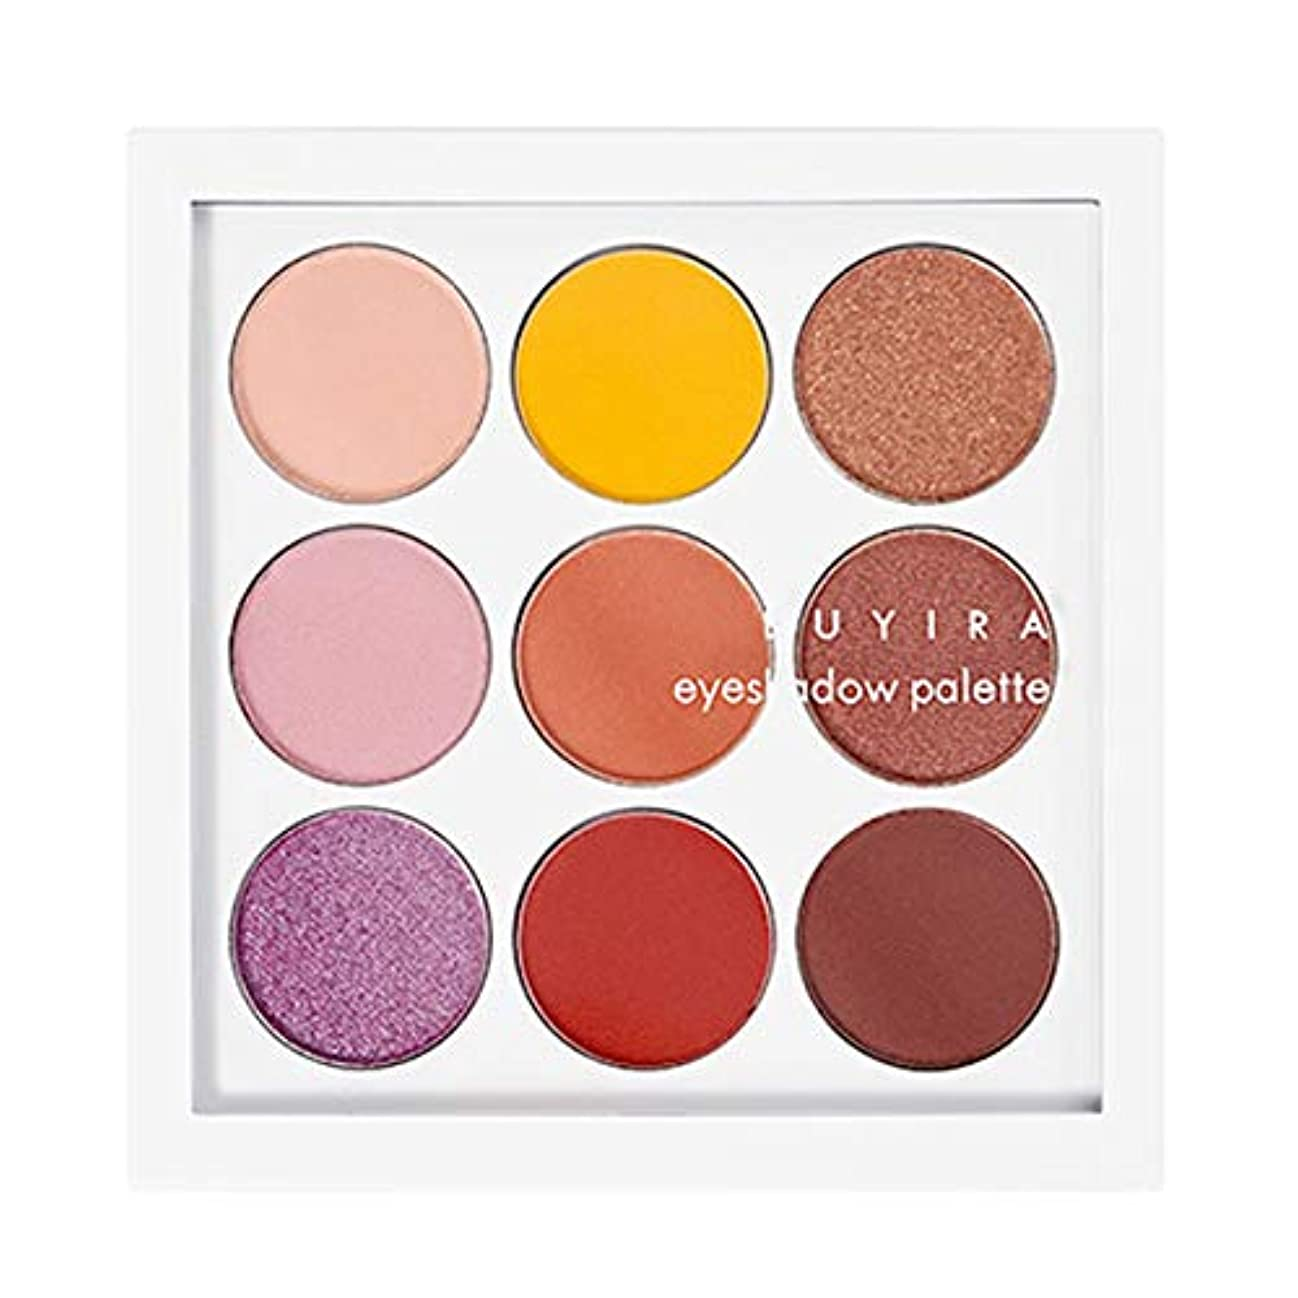 EUYIRA アイシャドーパレット (Coloful Nine) / EYESHADOW PALETTE COLORFUL NINE